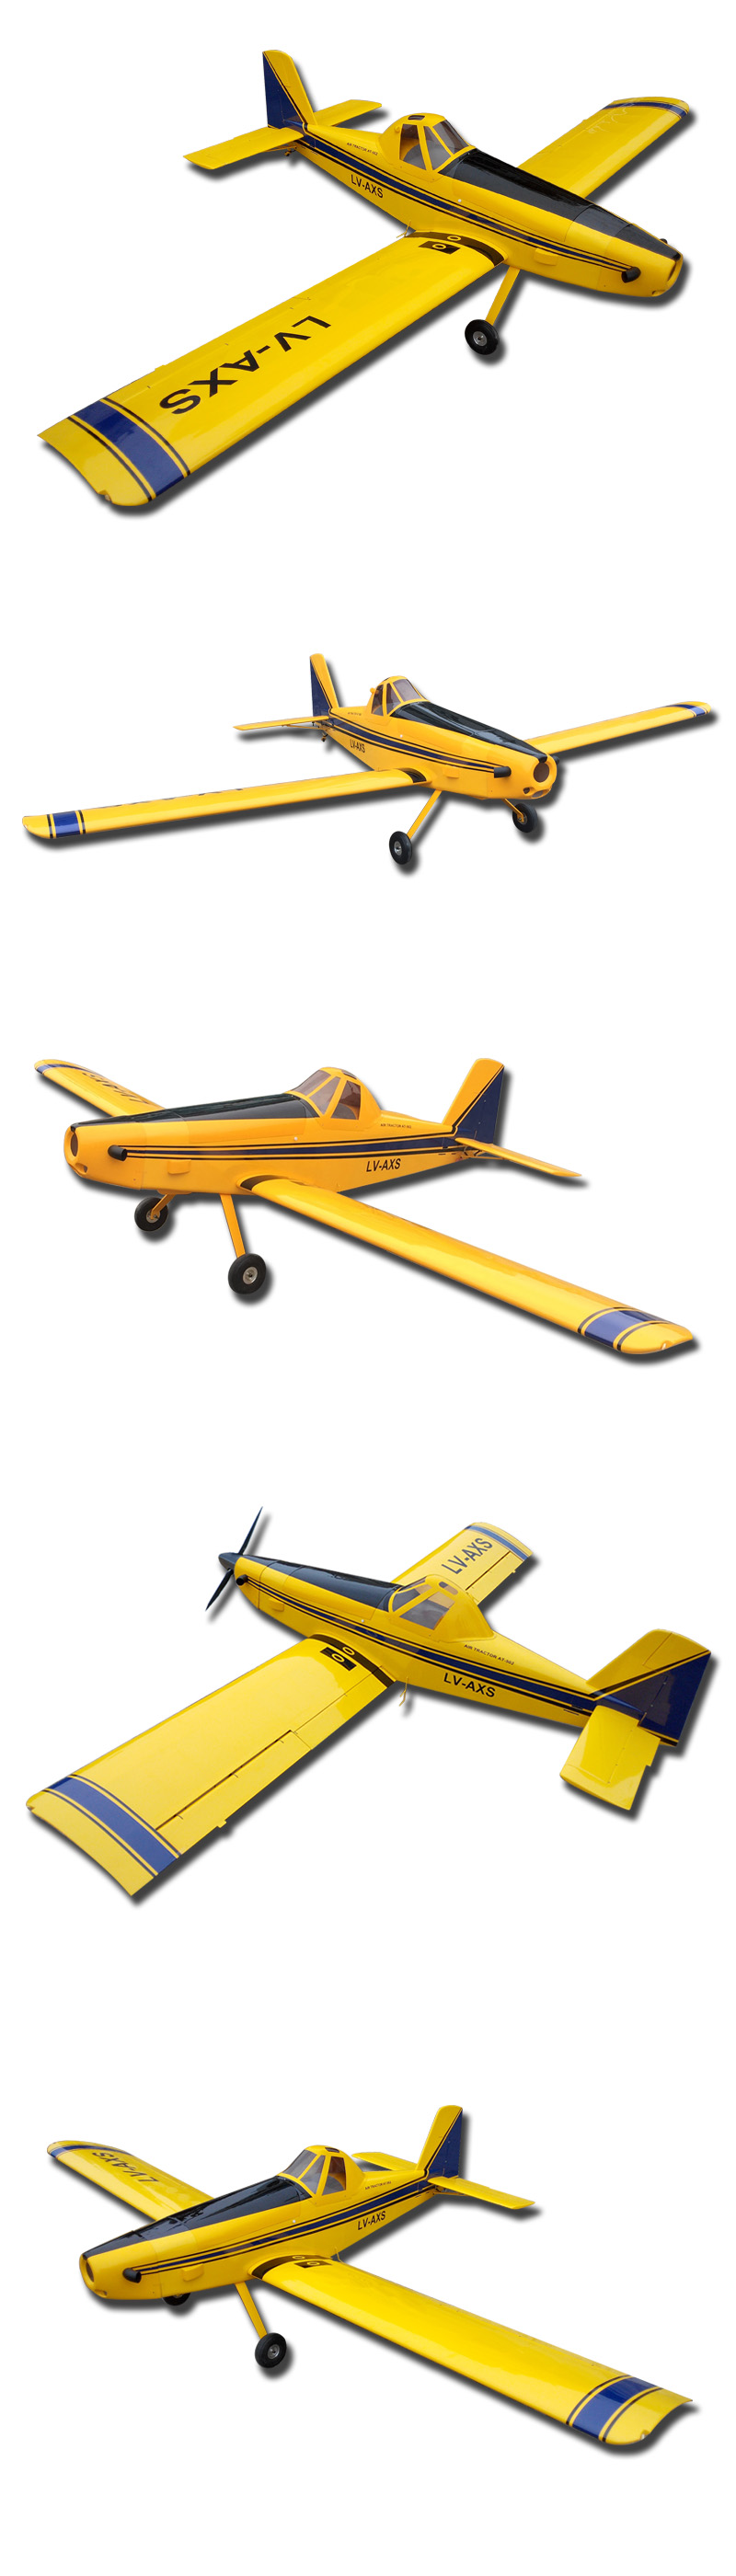 Mile High Rc 110 Quot Air Tractor 502 At 502 Piper Pawnee